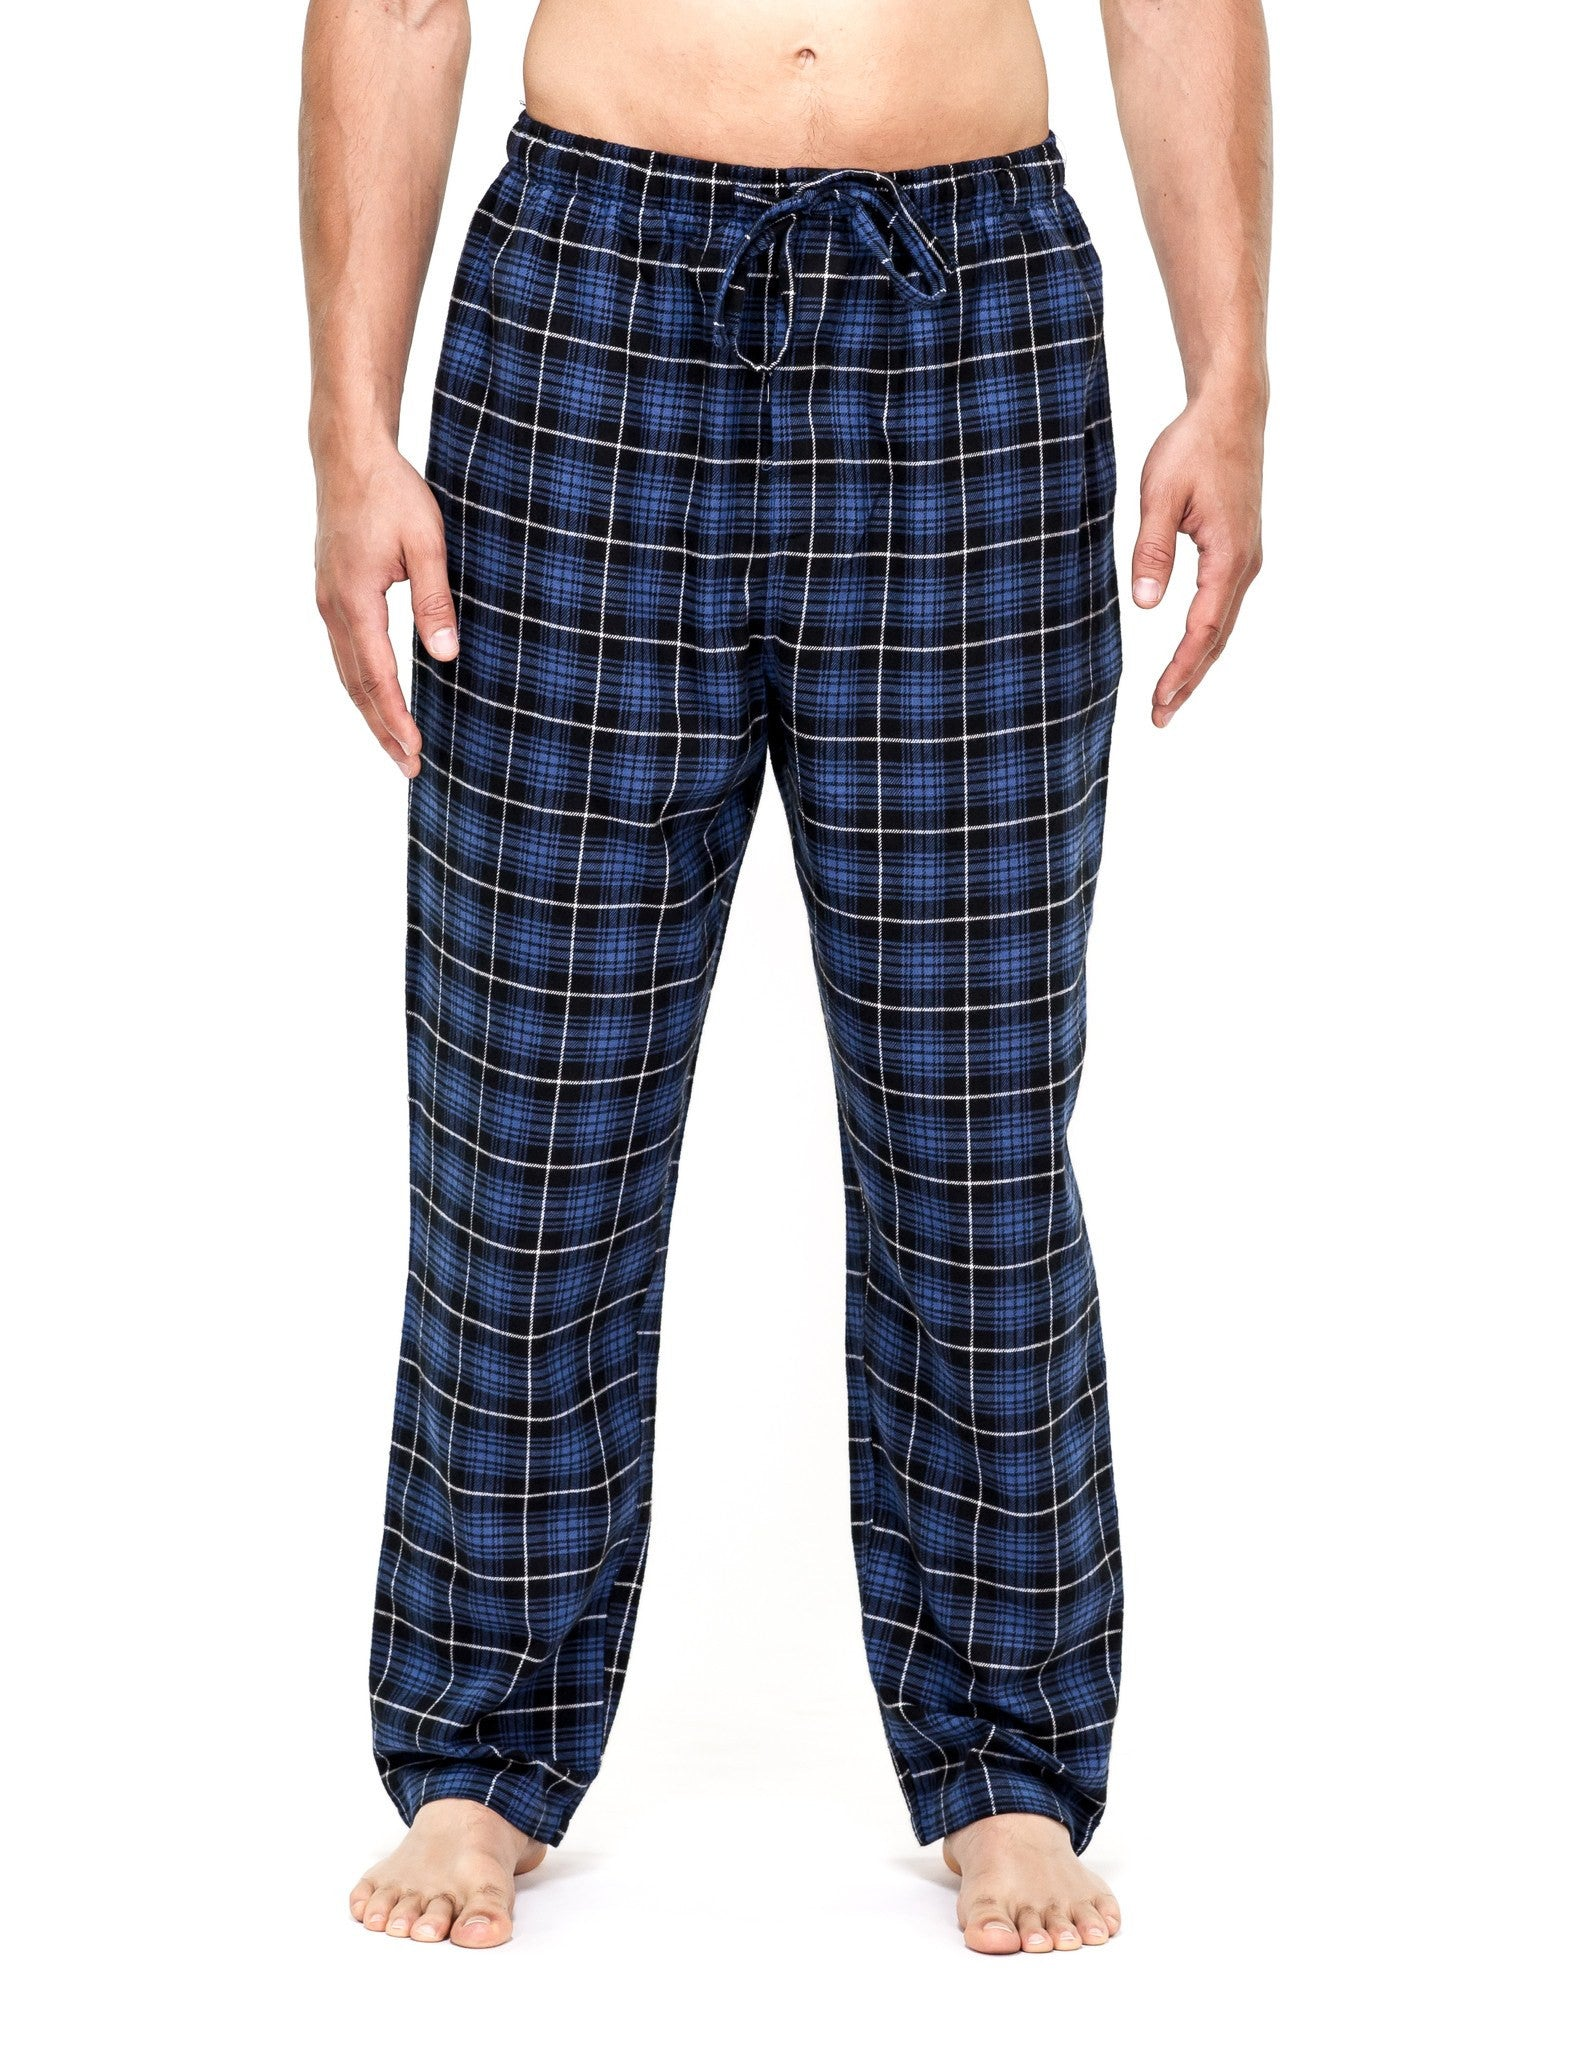 2-Pack (Black-Burgundy/Black-Blue Plaid)